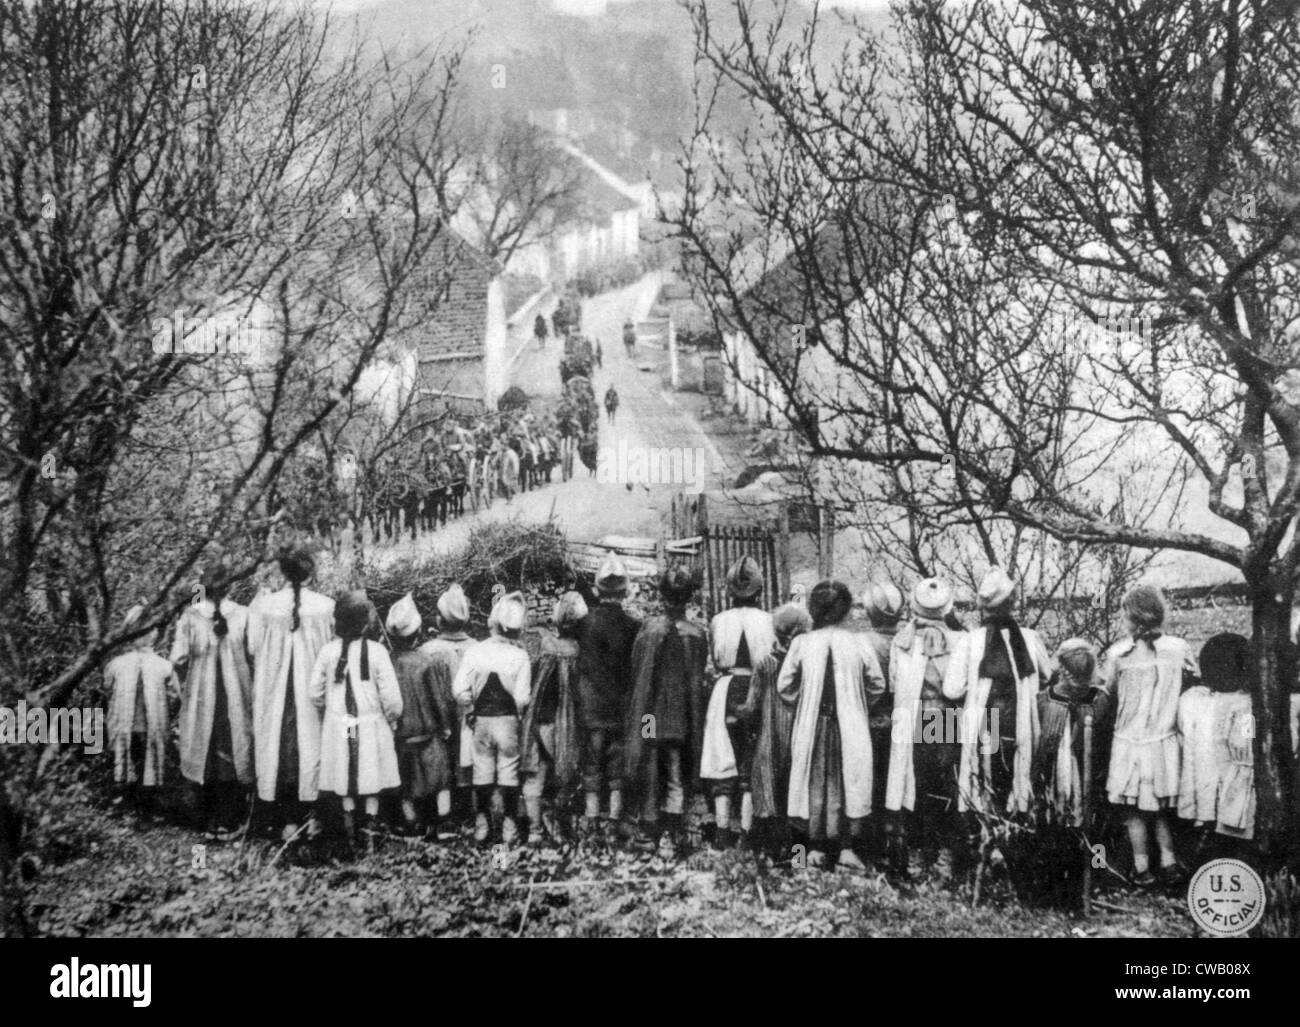 World War I, French children observe the arrival of the American 101st Ammunition Train, U.S. Signal Corps photograph, - Stock Image